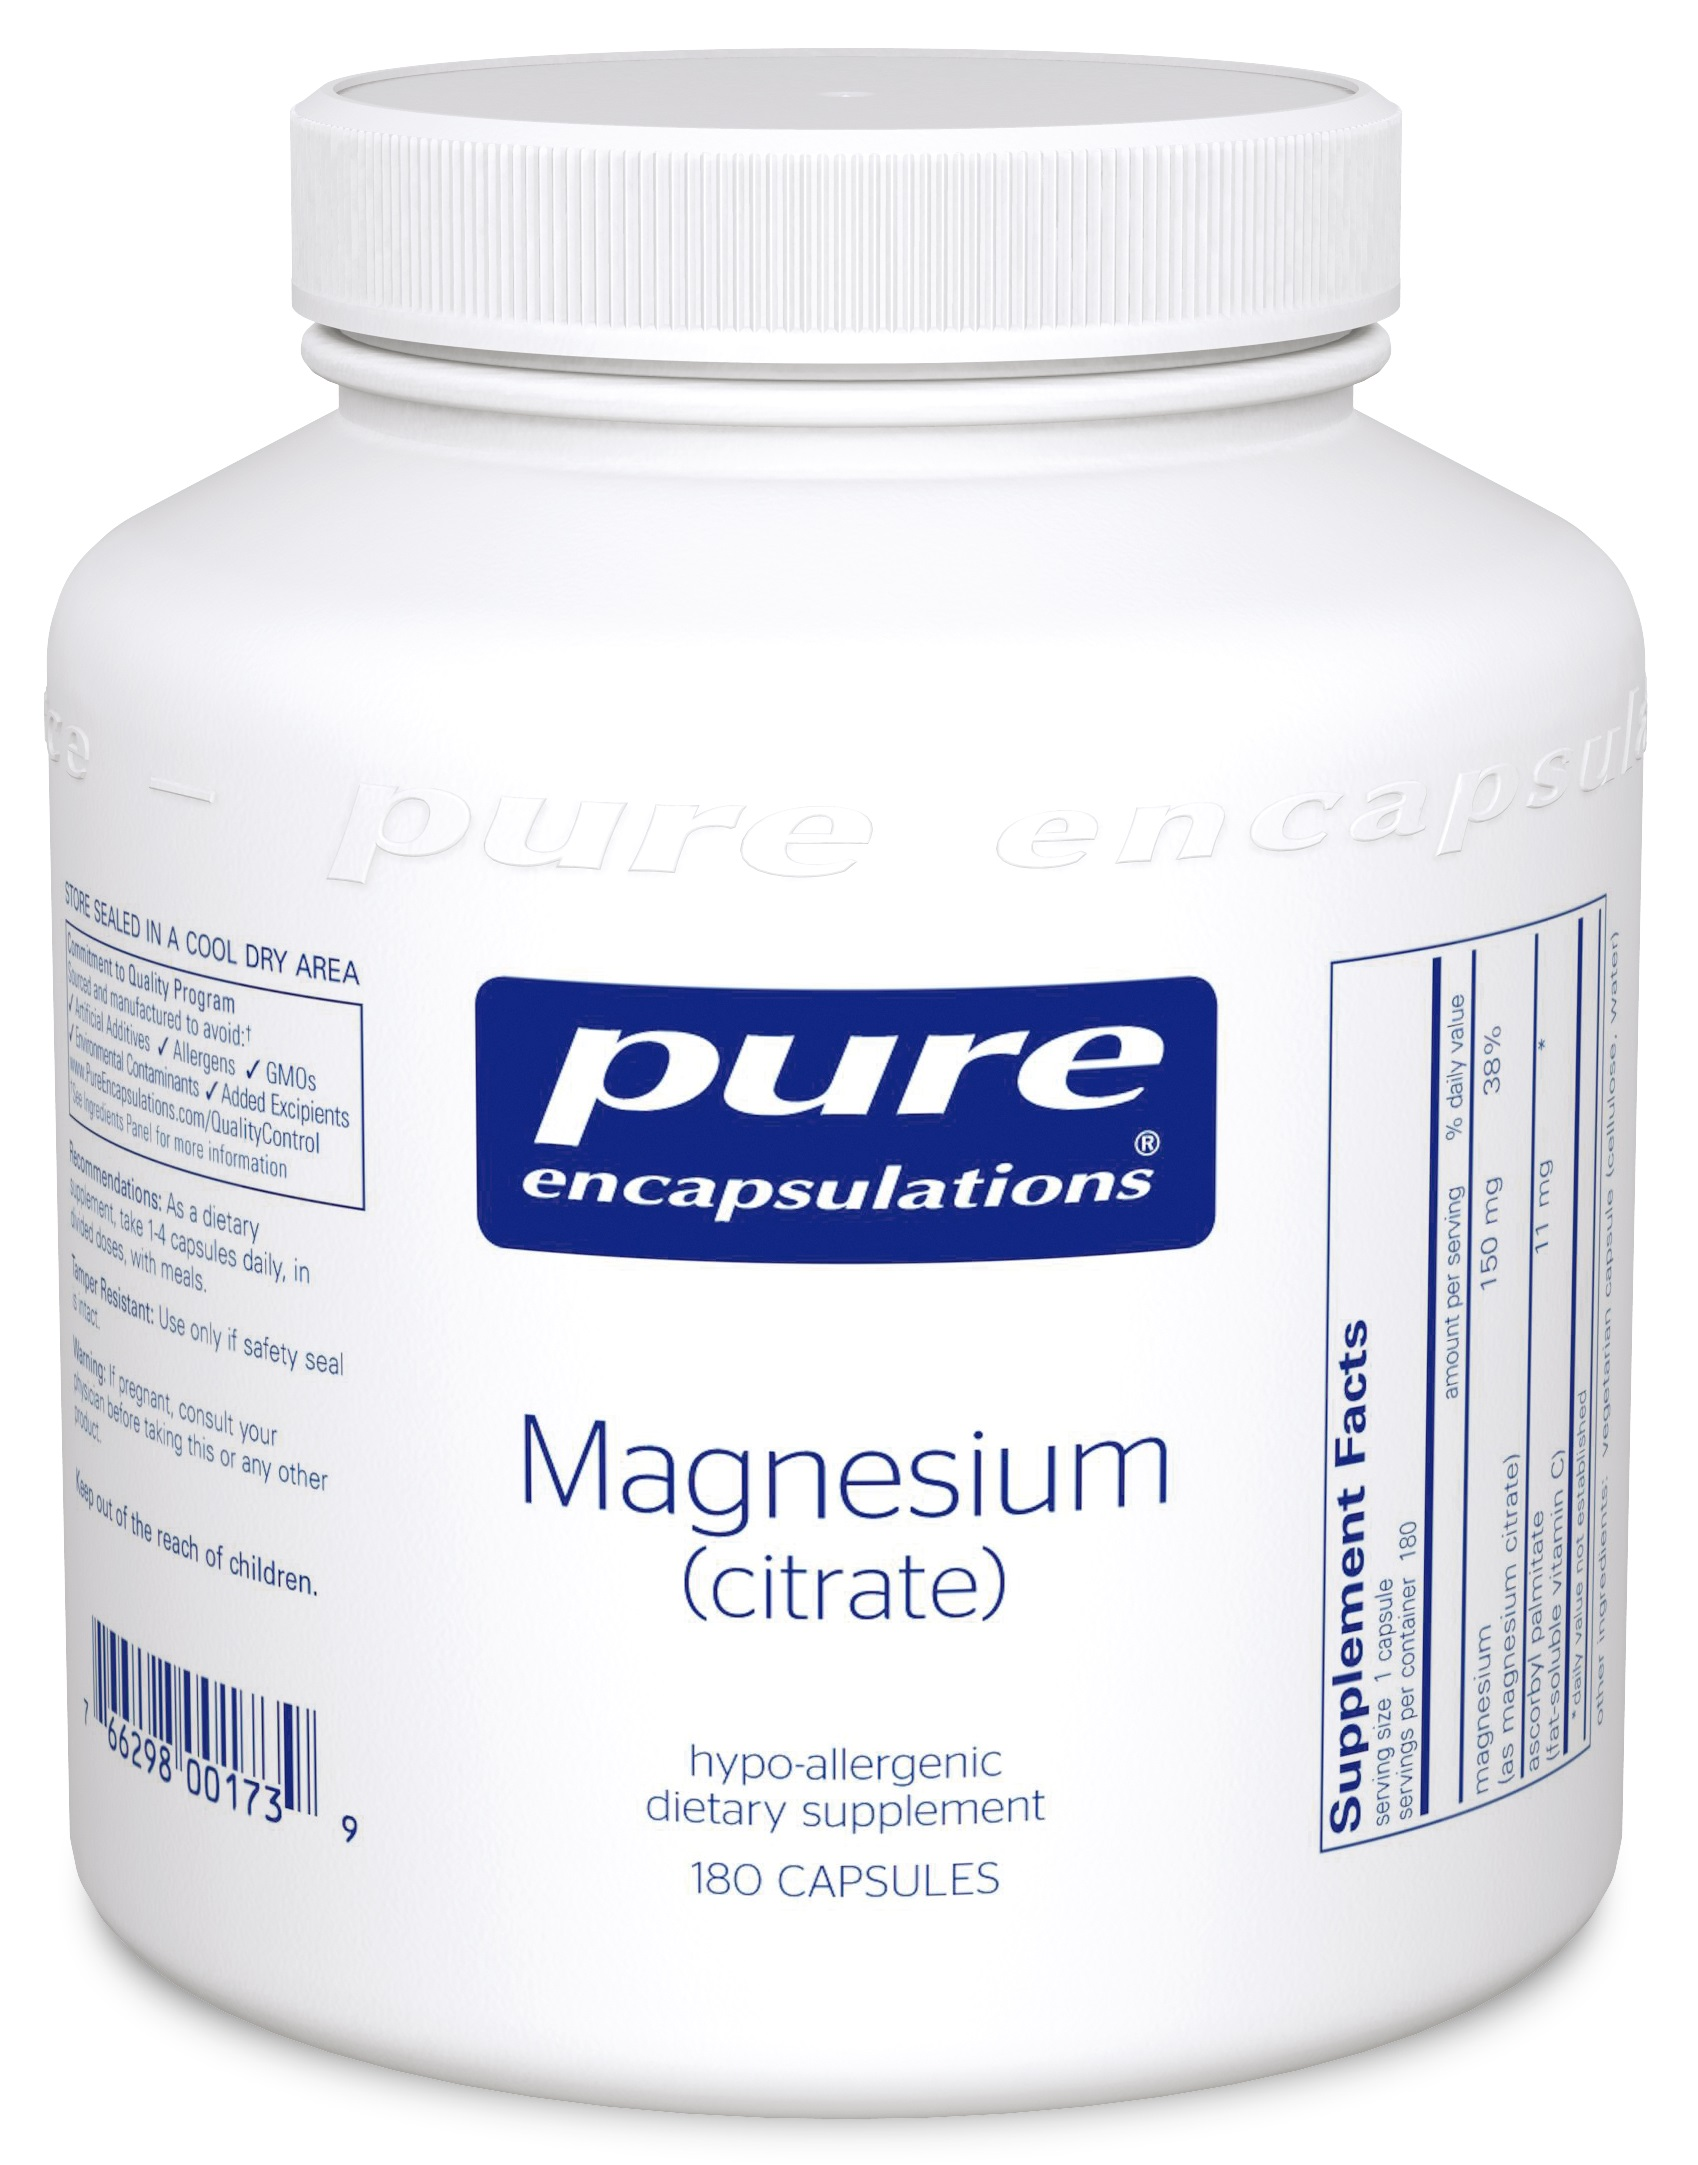 Pure Encapsulations Magnesium (citrate)